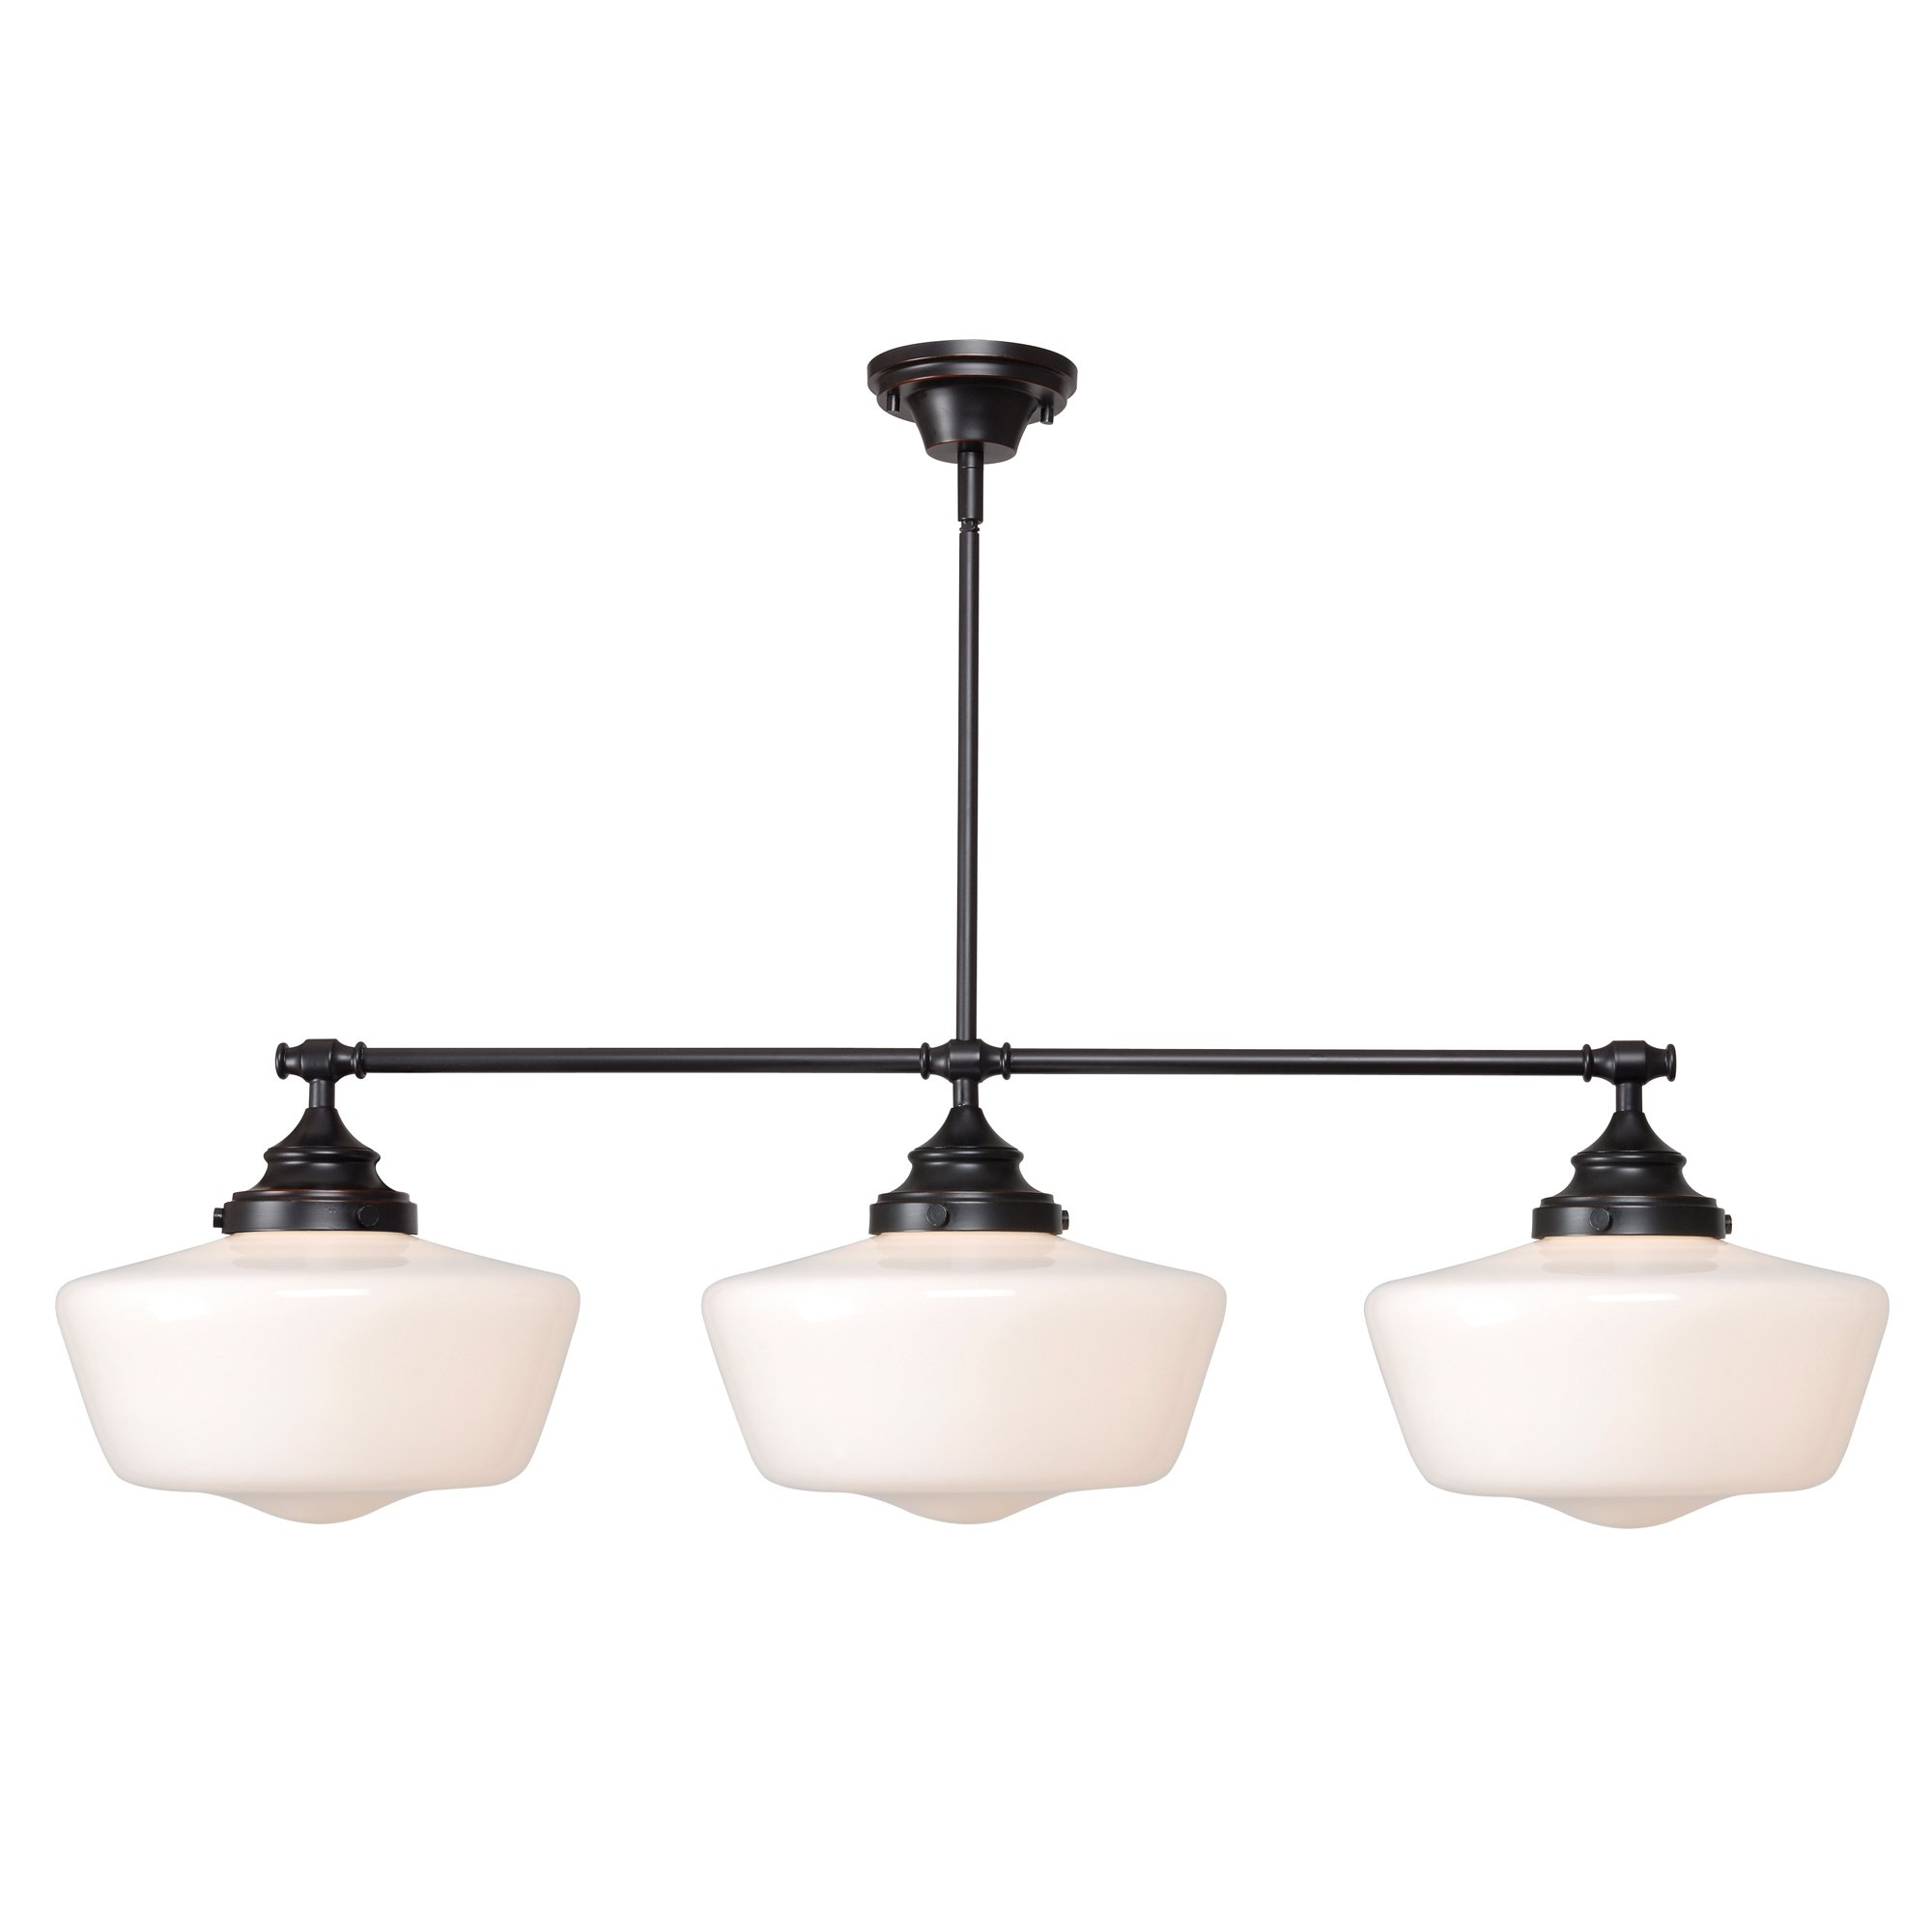 Kenroy Home 93663ORB  Cambridge 3-Light Island Light, Blackened Oil Rubbed Bronze by Kenroy Home